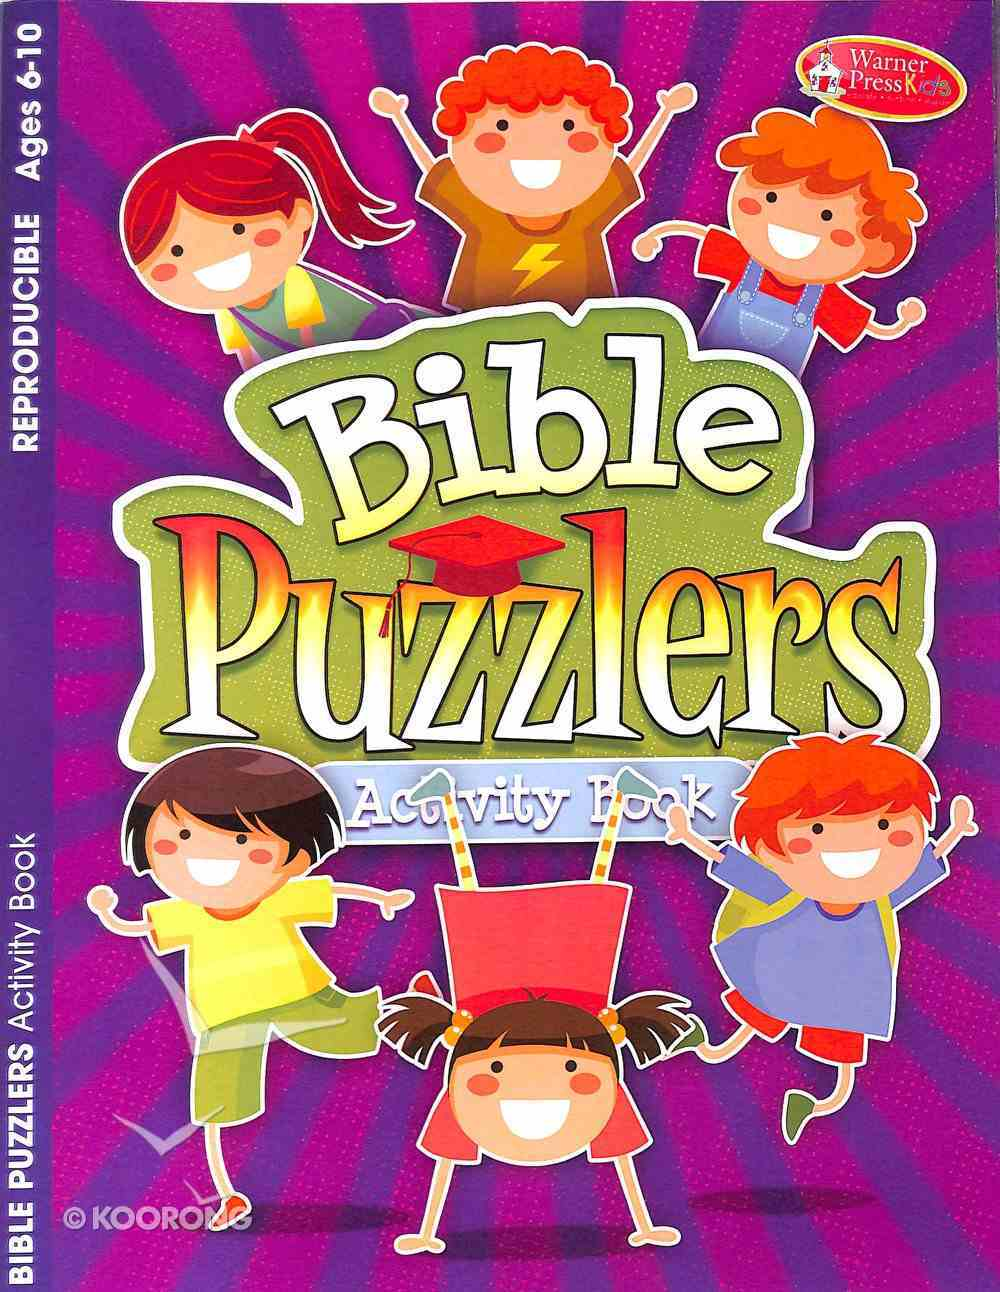 Bible Puzzlers 6-10 (Reproducible) (Warner Press Colouring & Activity Books Series) Paperback